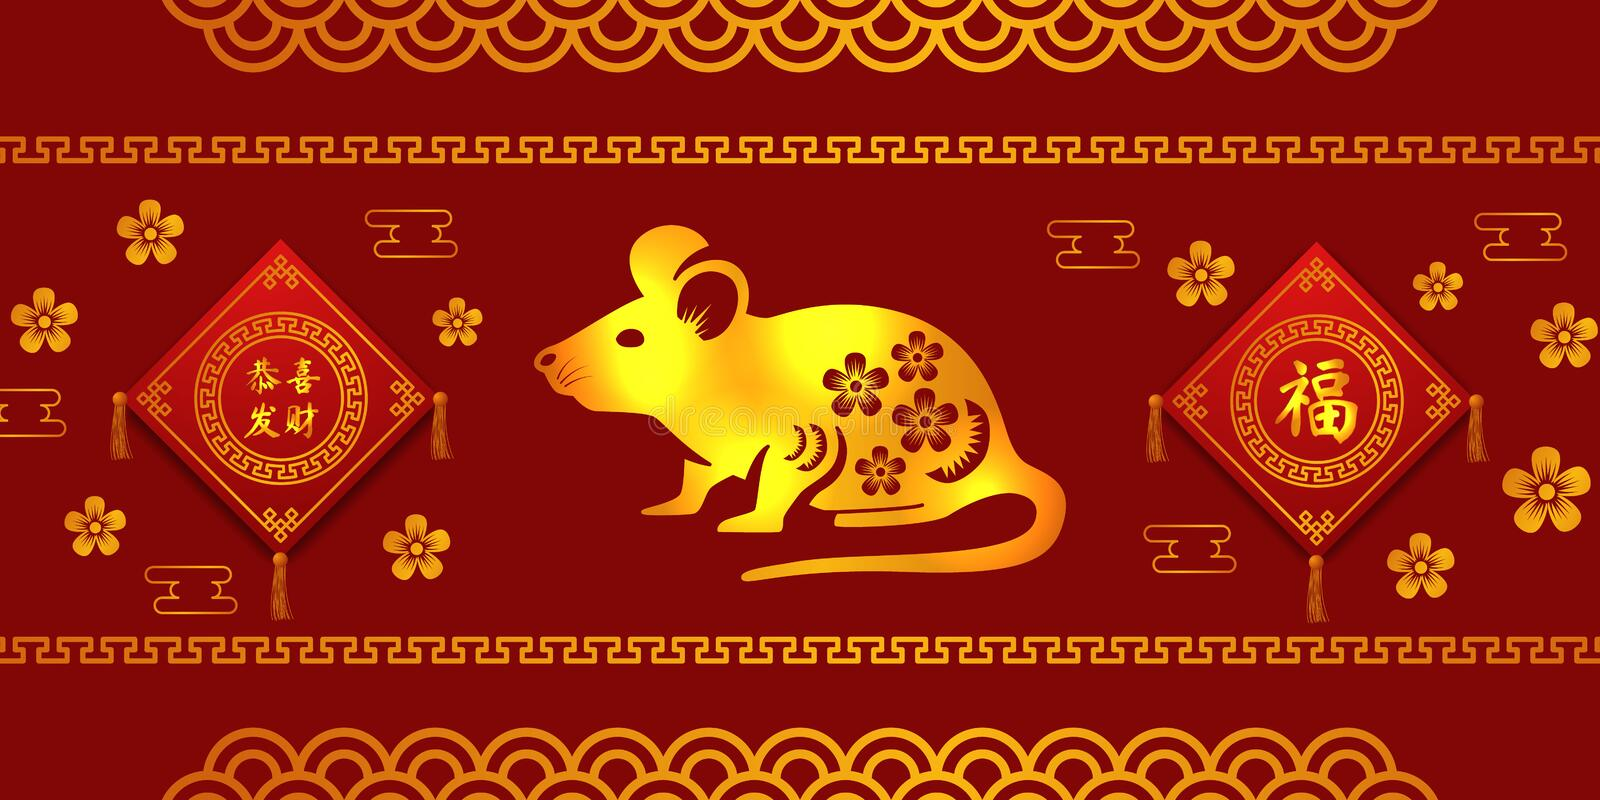 2020 chinese new year of rat or mouse. golden ornament with red background royalty free stock image